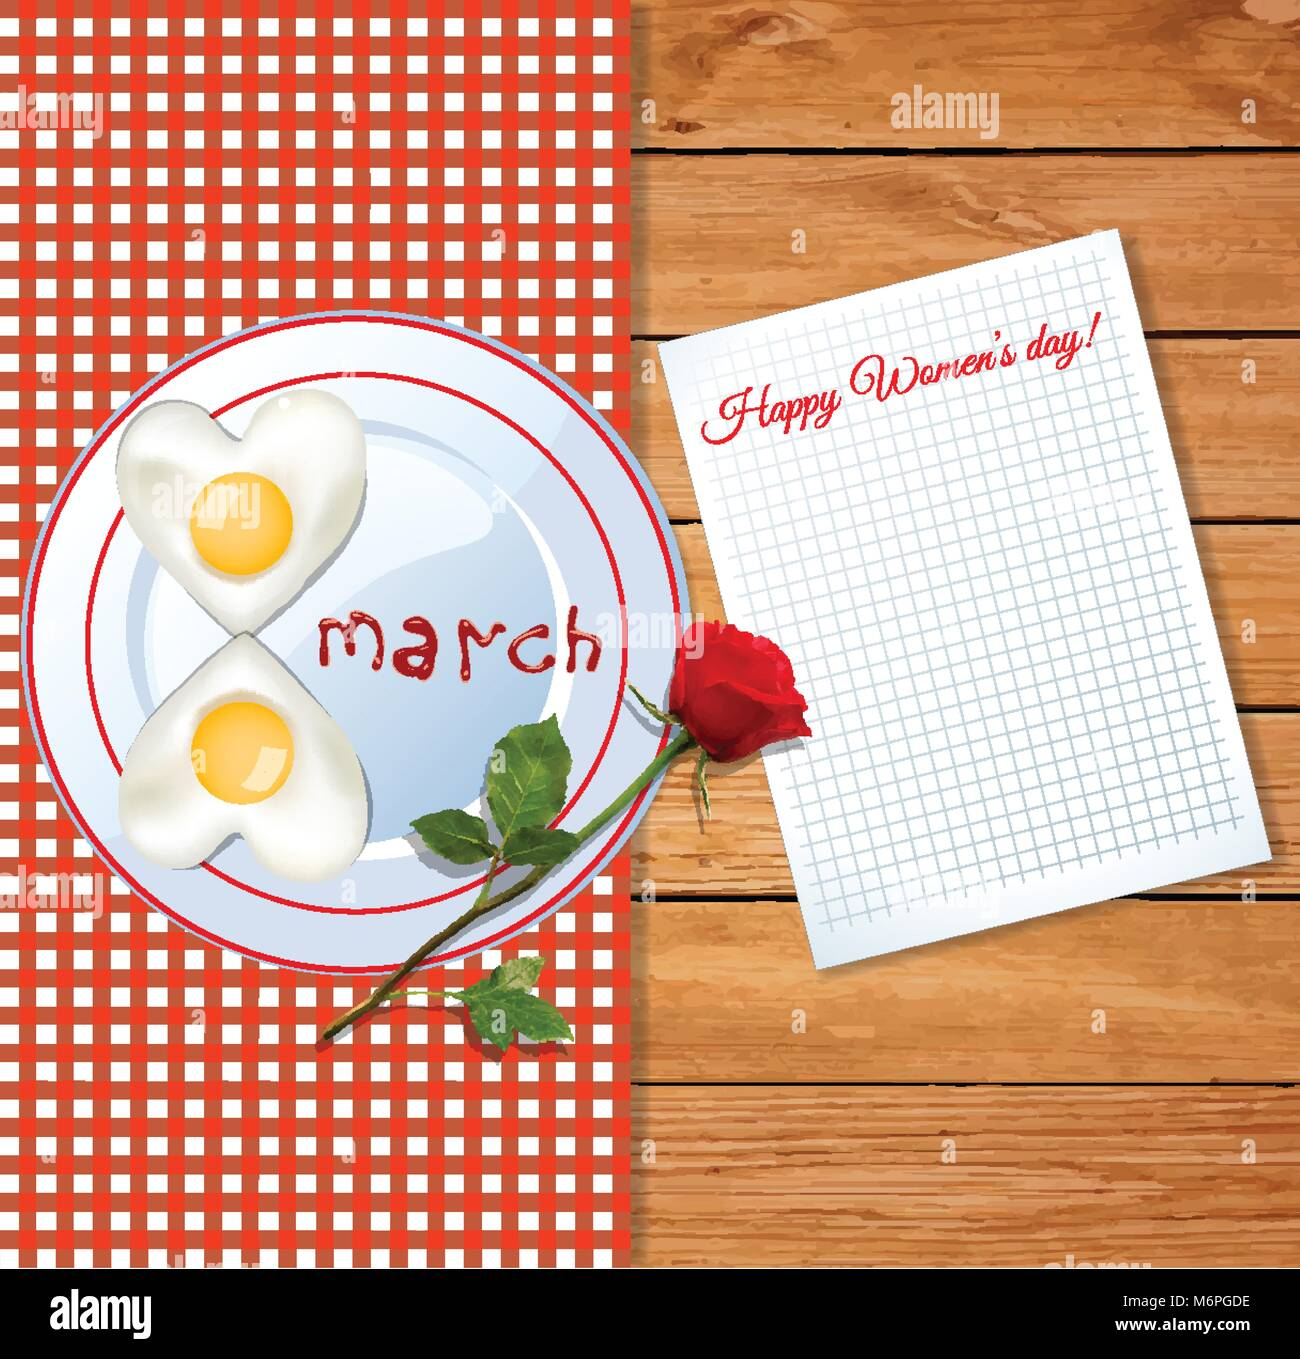 Happy womens day greeting card with number eight shaped omelet on plate with ketchup letters 8 march and red rose - Stock Vector